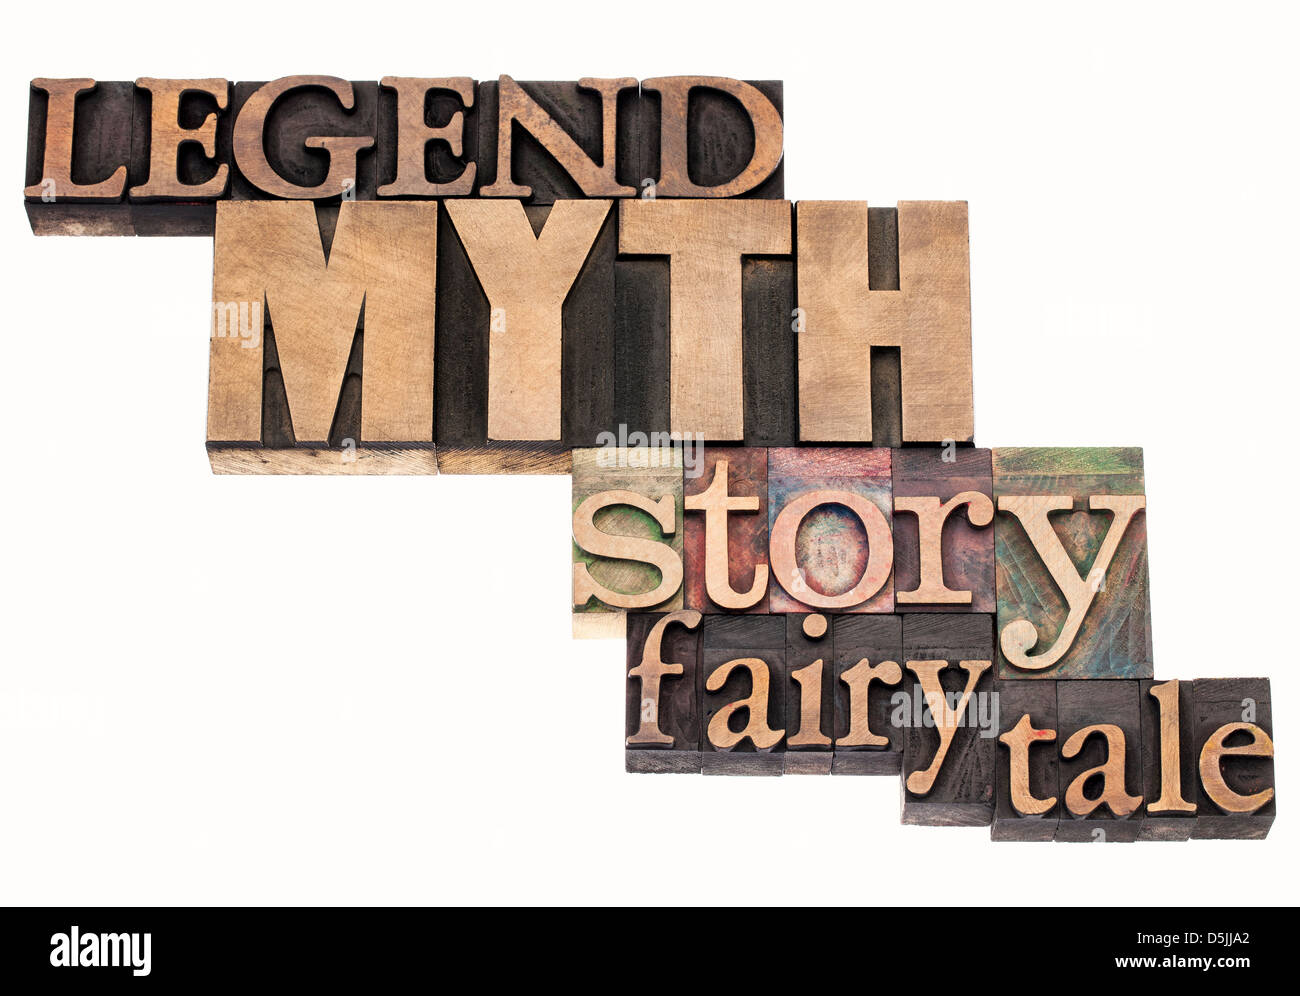 legend, myth, story, fairy tale - isolated word abstract in vintage letterpress wood type printing blocks - Stock Image